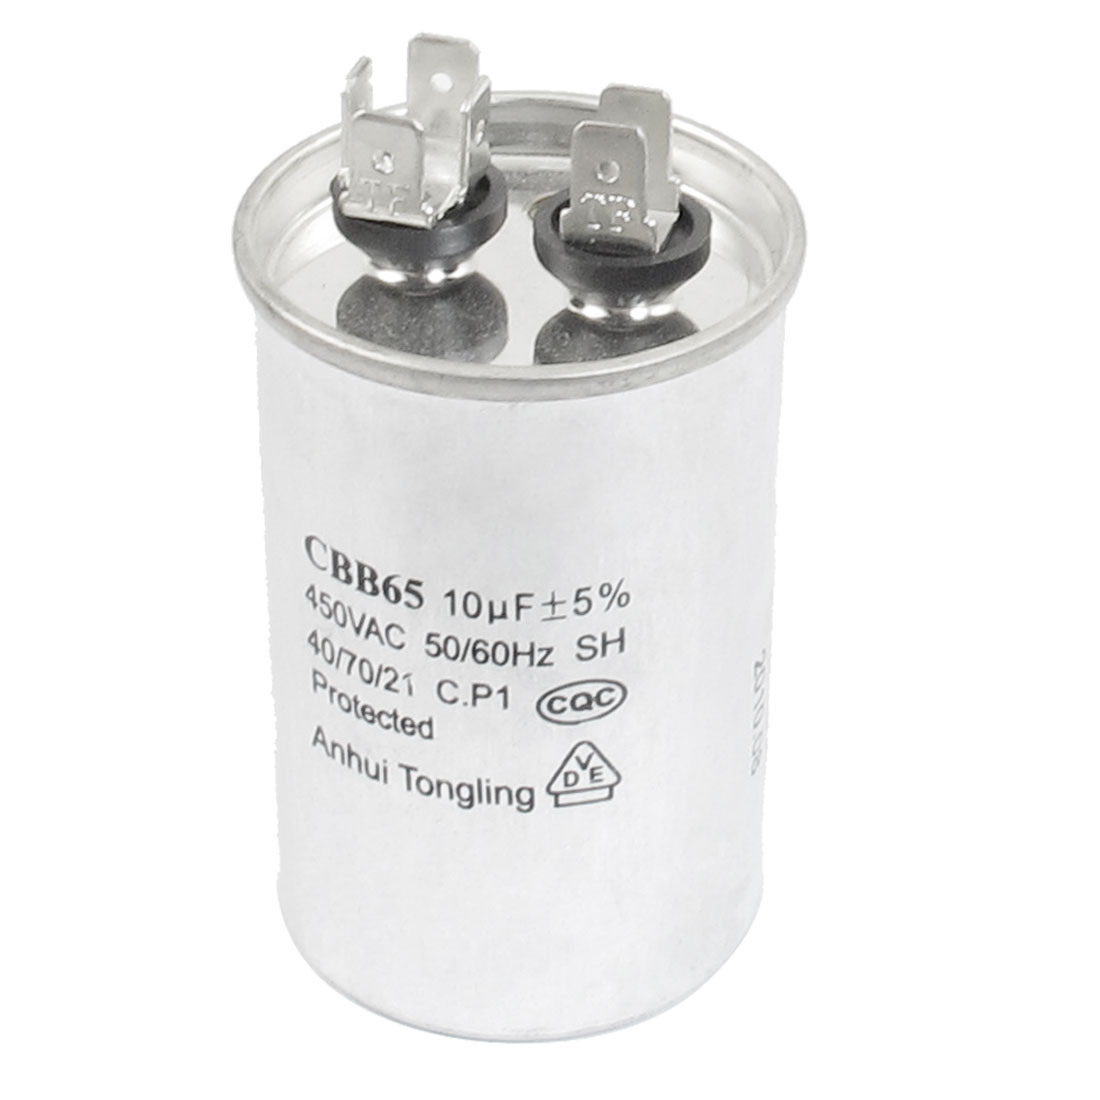 CBB65 10uF 450VAC Polypropylene Film Air Conditioning Motor Run Capacitor